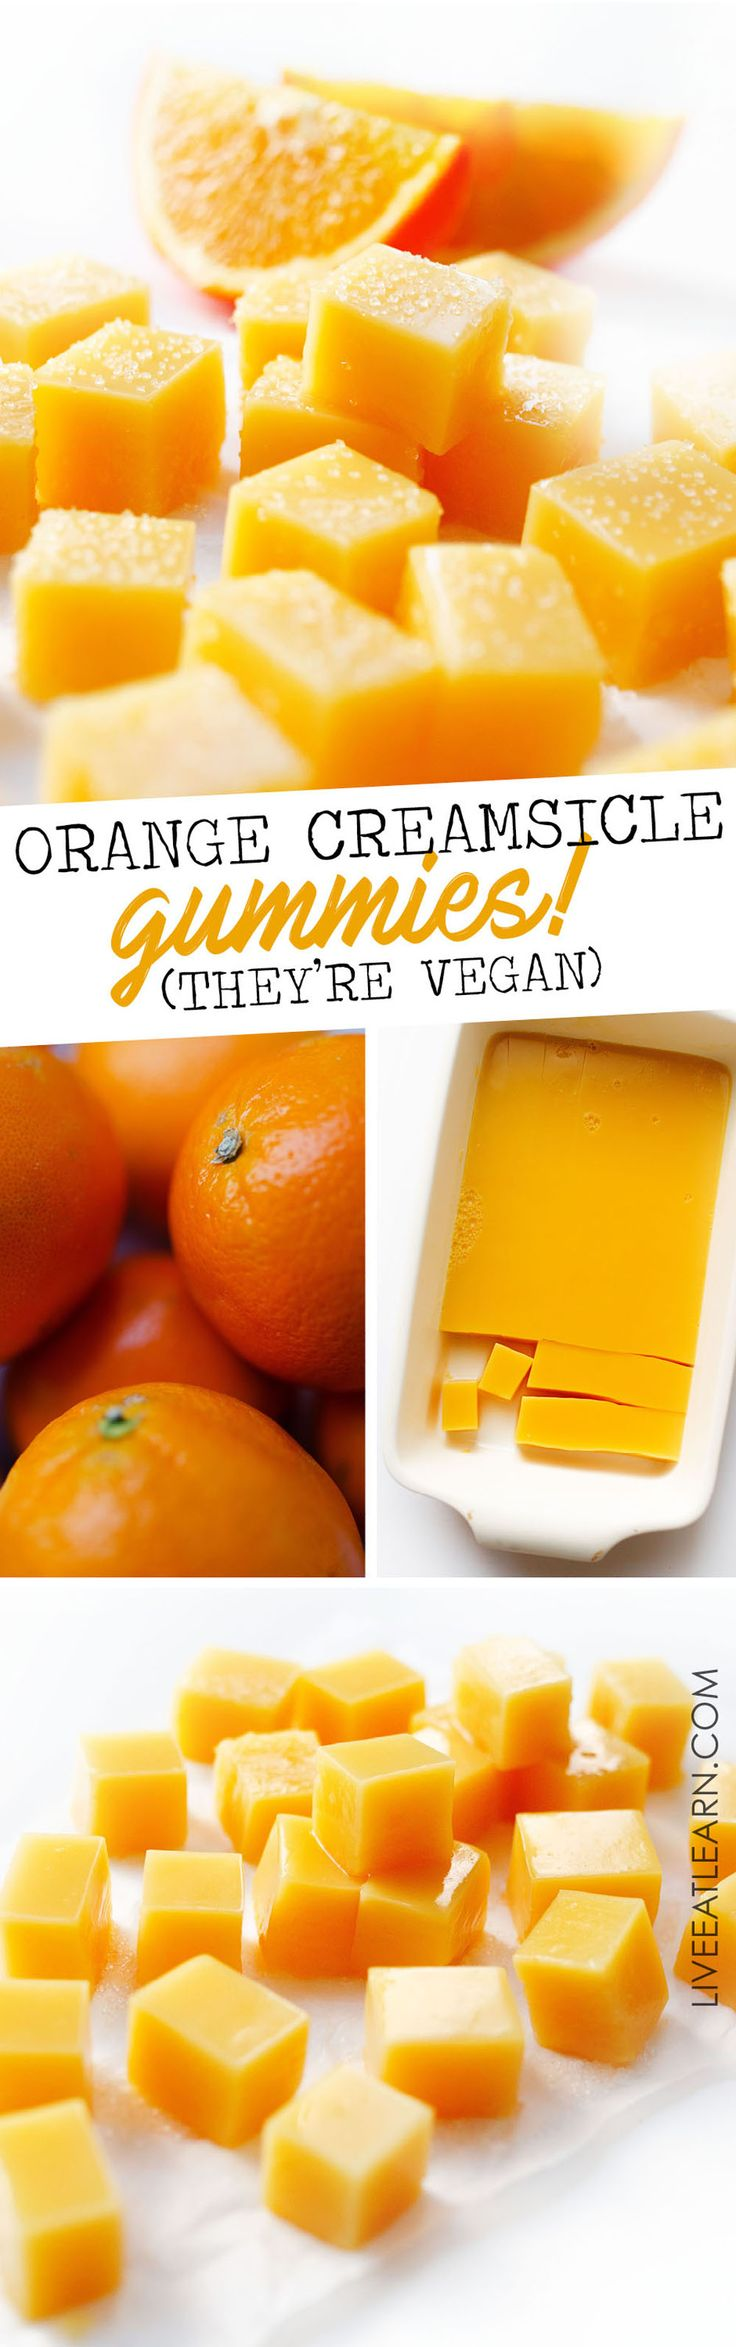 You can make your own vegan Orange Creamsicle Gummies at home with just a few ingredients. This vegan gummy recipe is a flavor-packed homemade candy idea that is healthy, fast, and delicious. #candy #healthycandy #vegancandy // Live Eat Learn